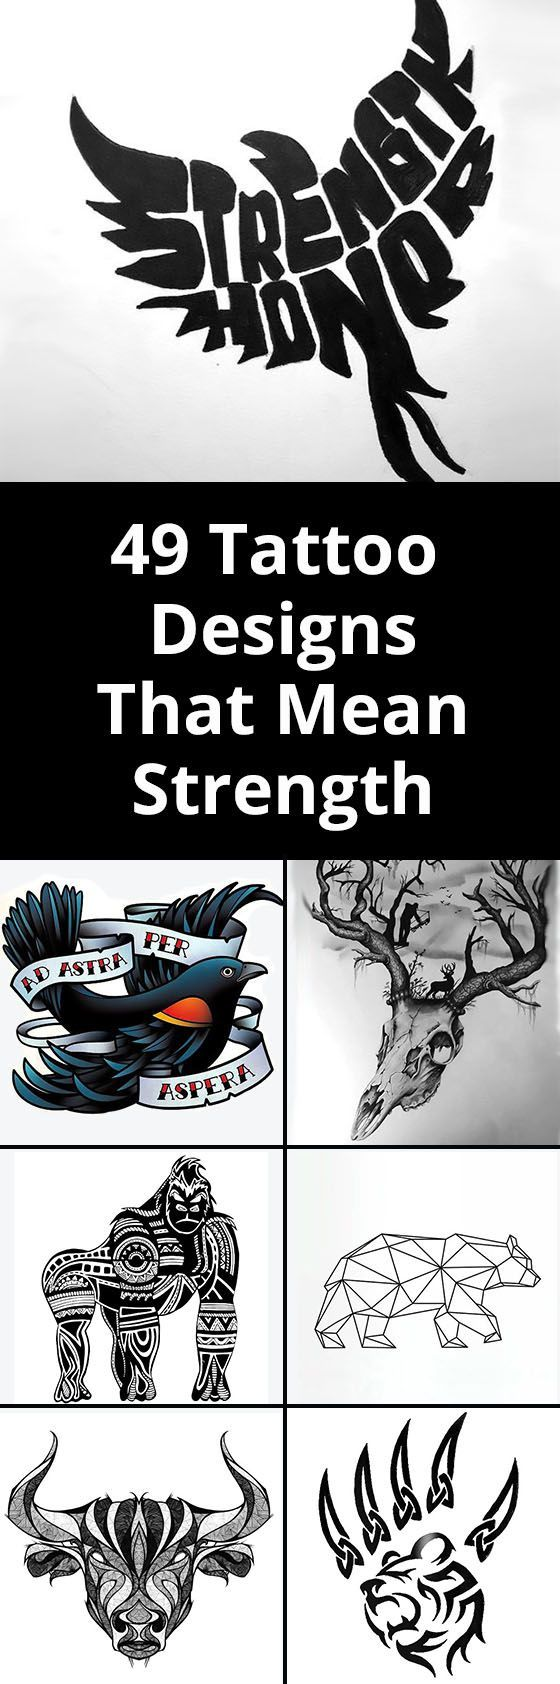 Tattoos that represent strength have a lot of potential symbols and icons that can be incorporated into a design.People who...